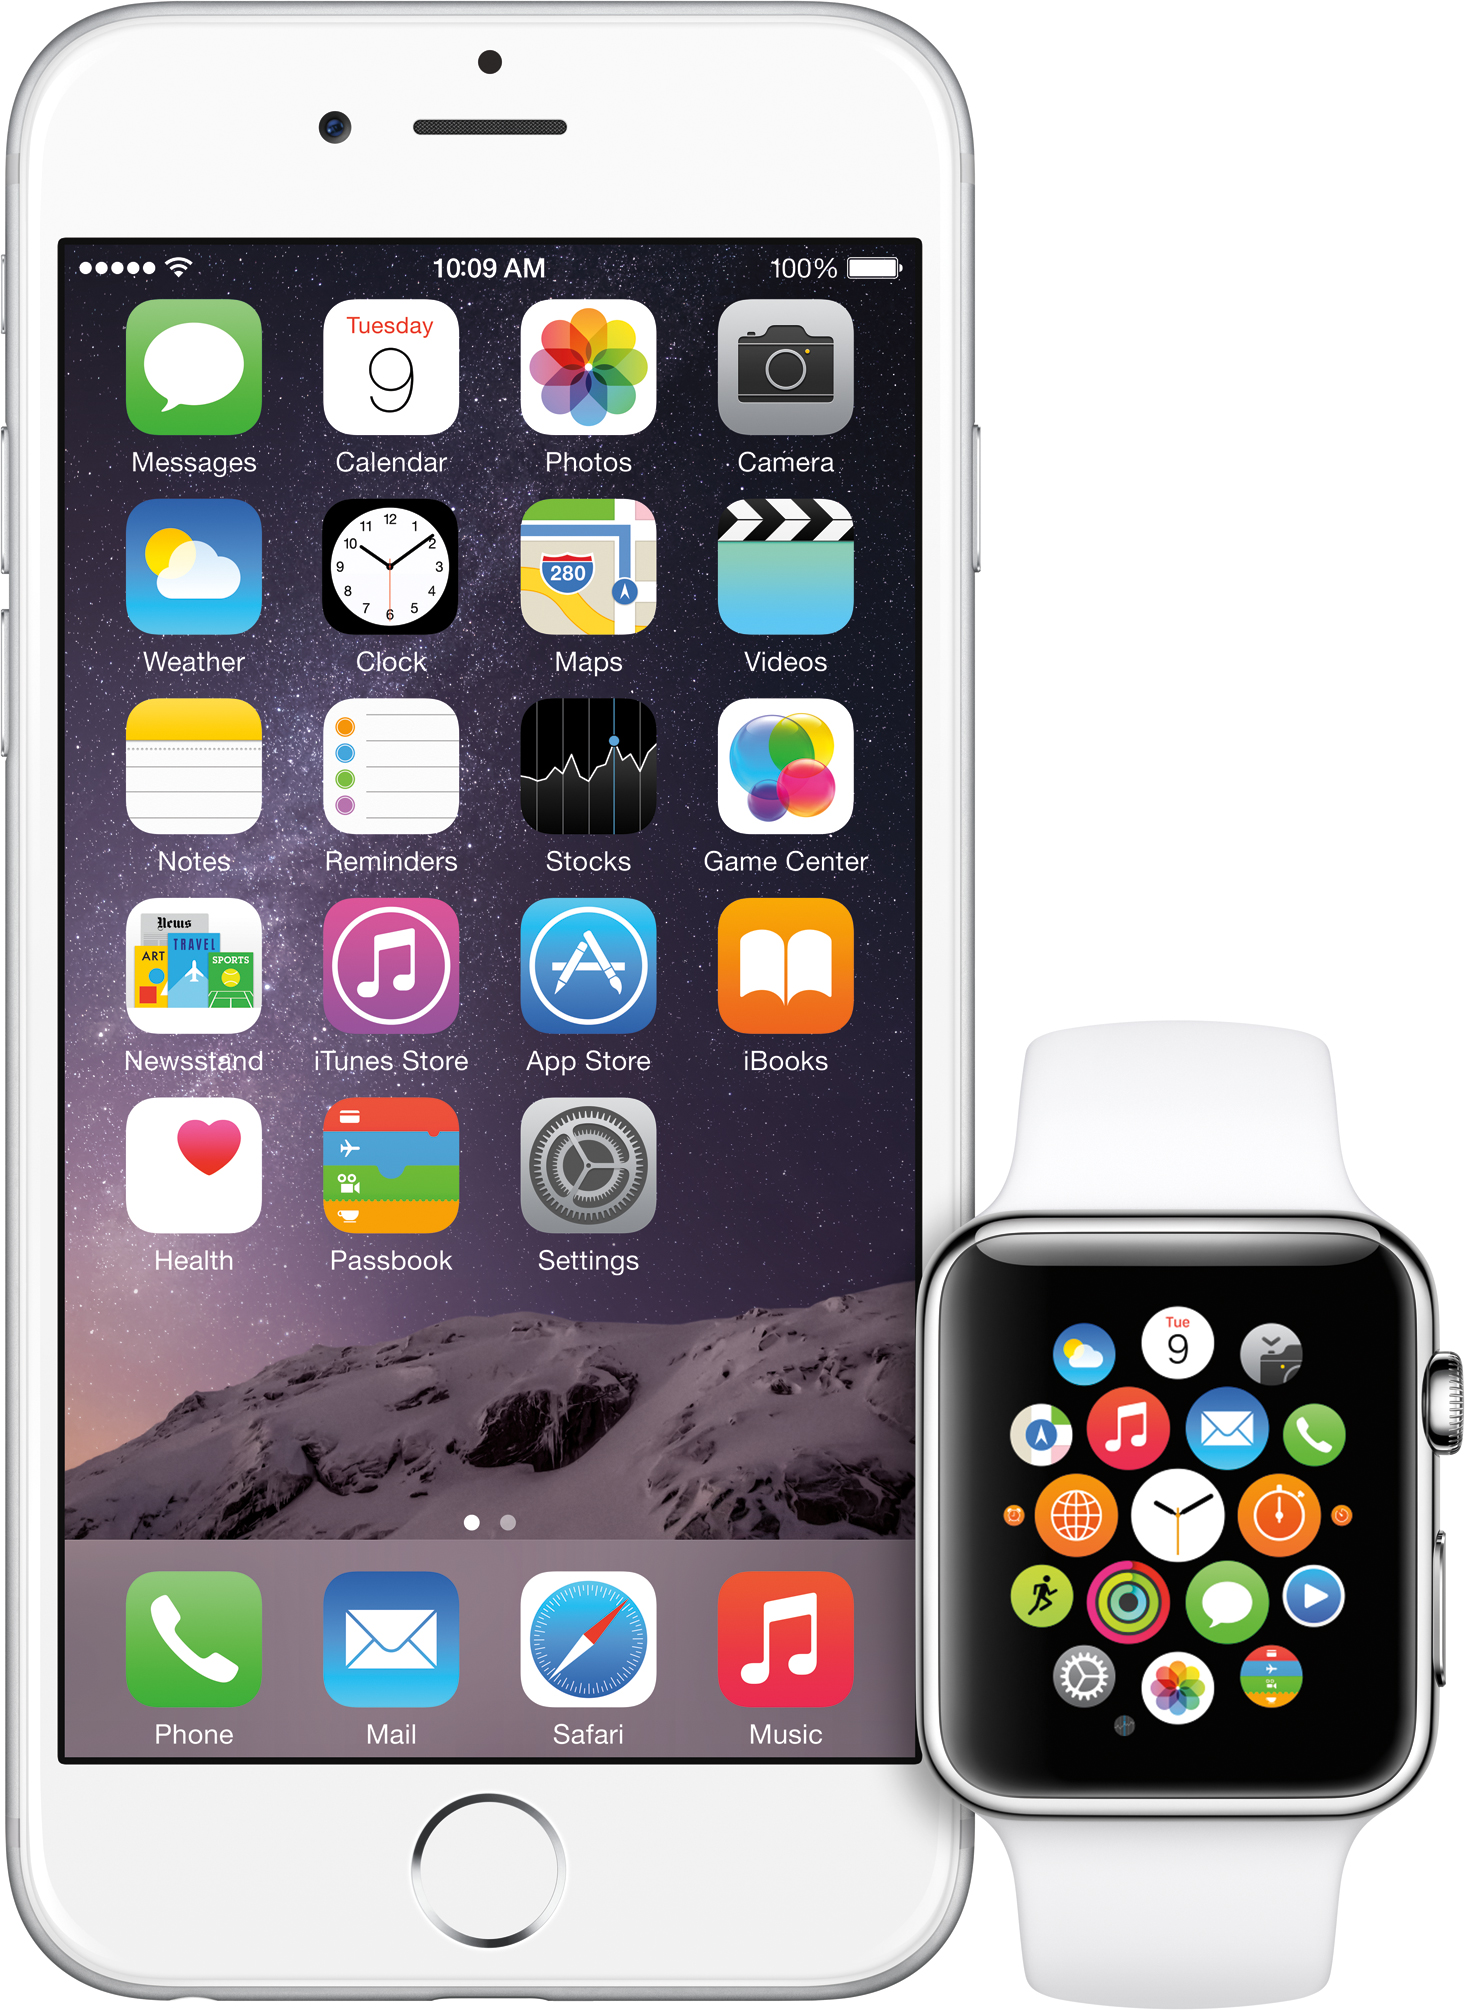 Apple Watch ao lado de um iPhone 6